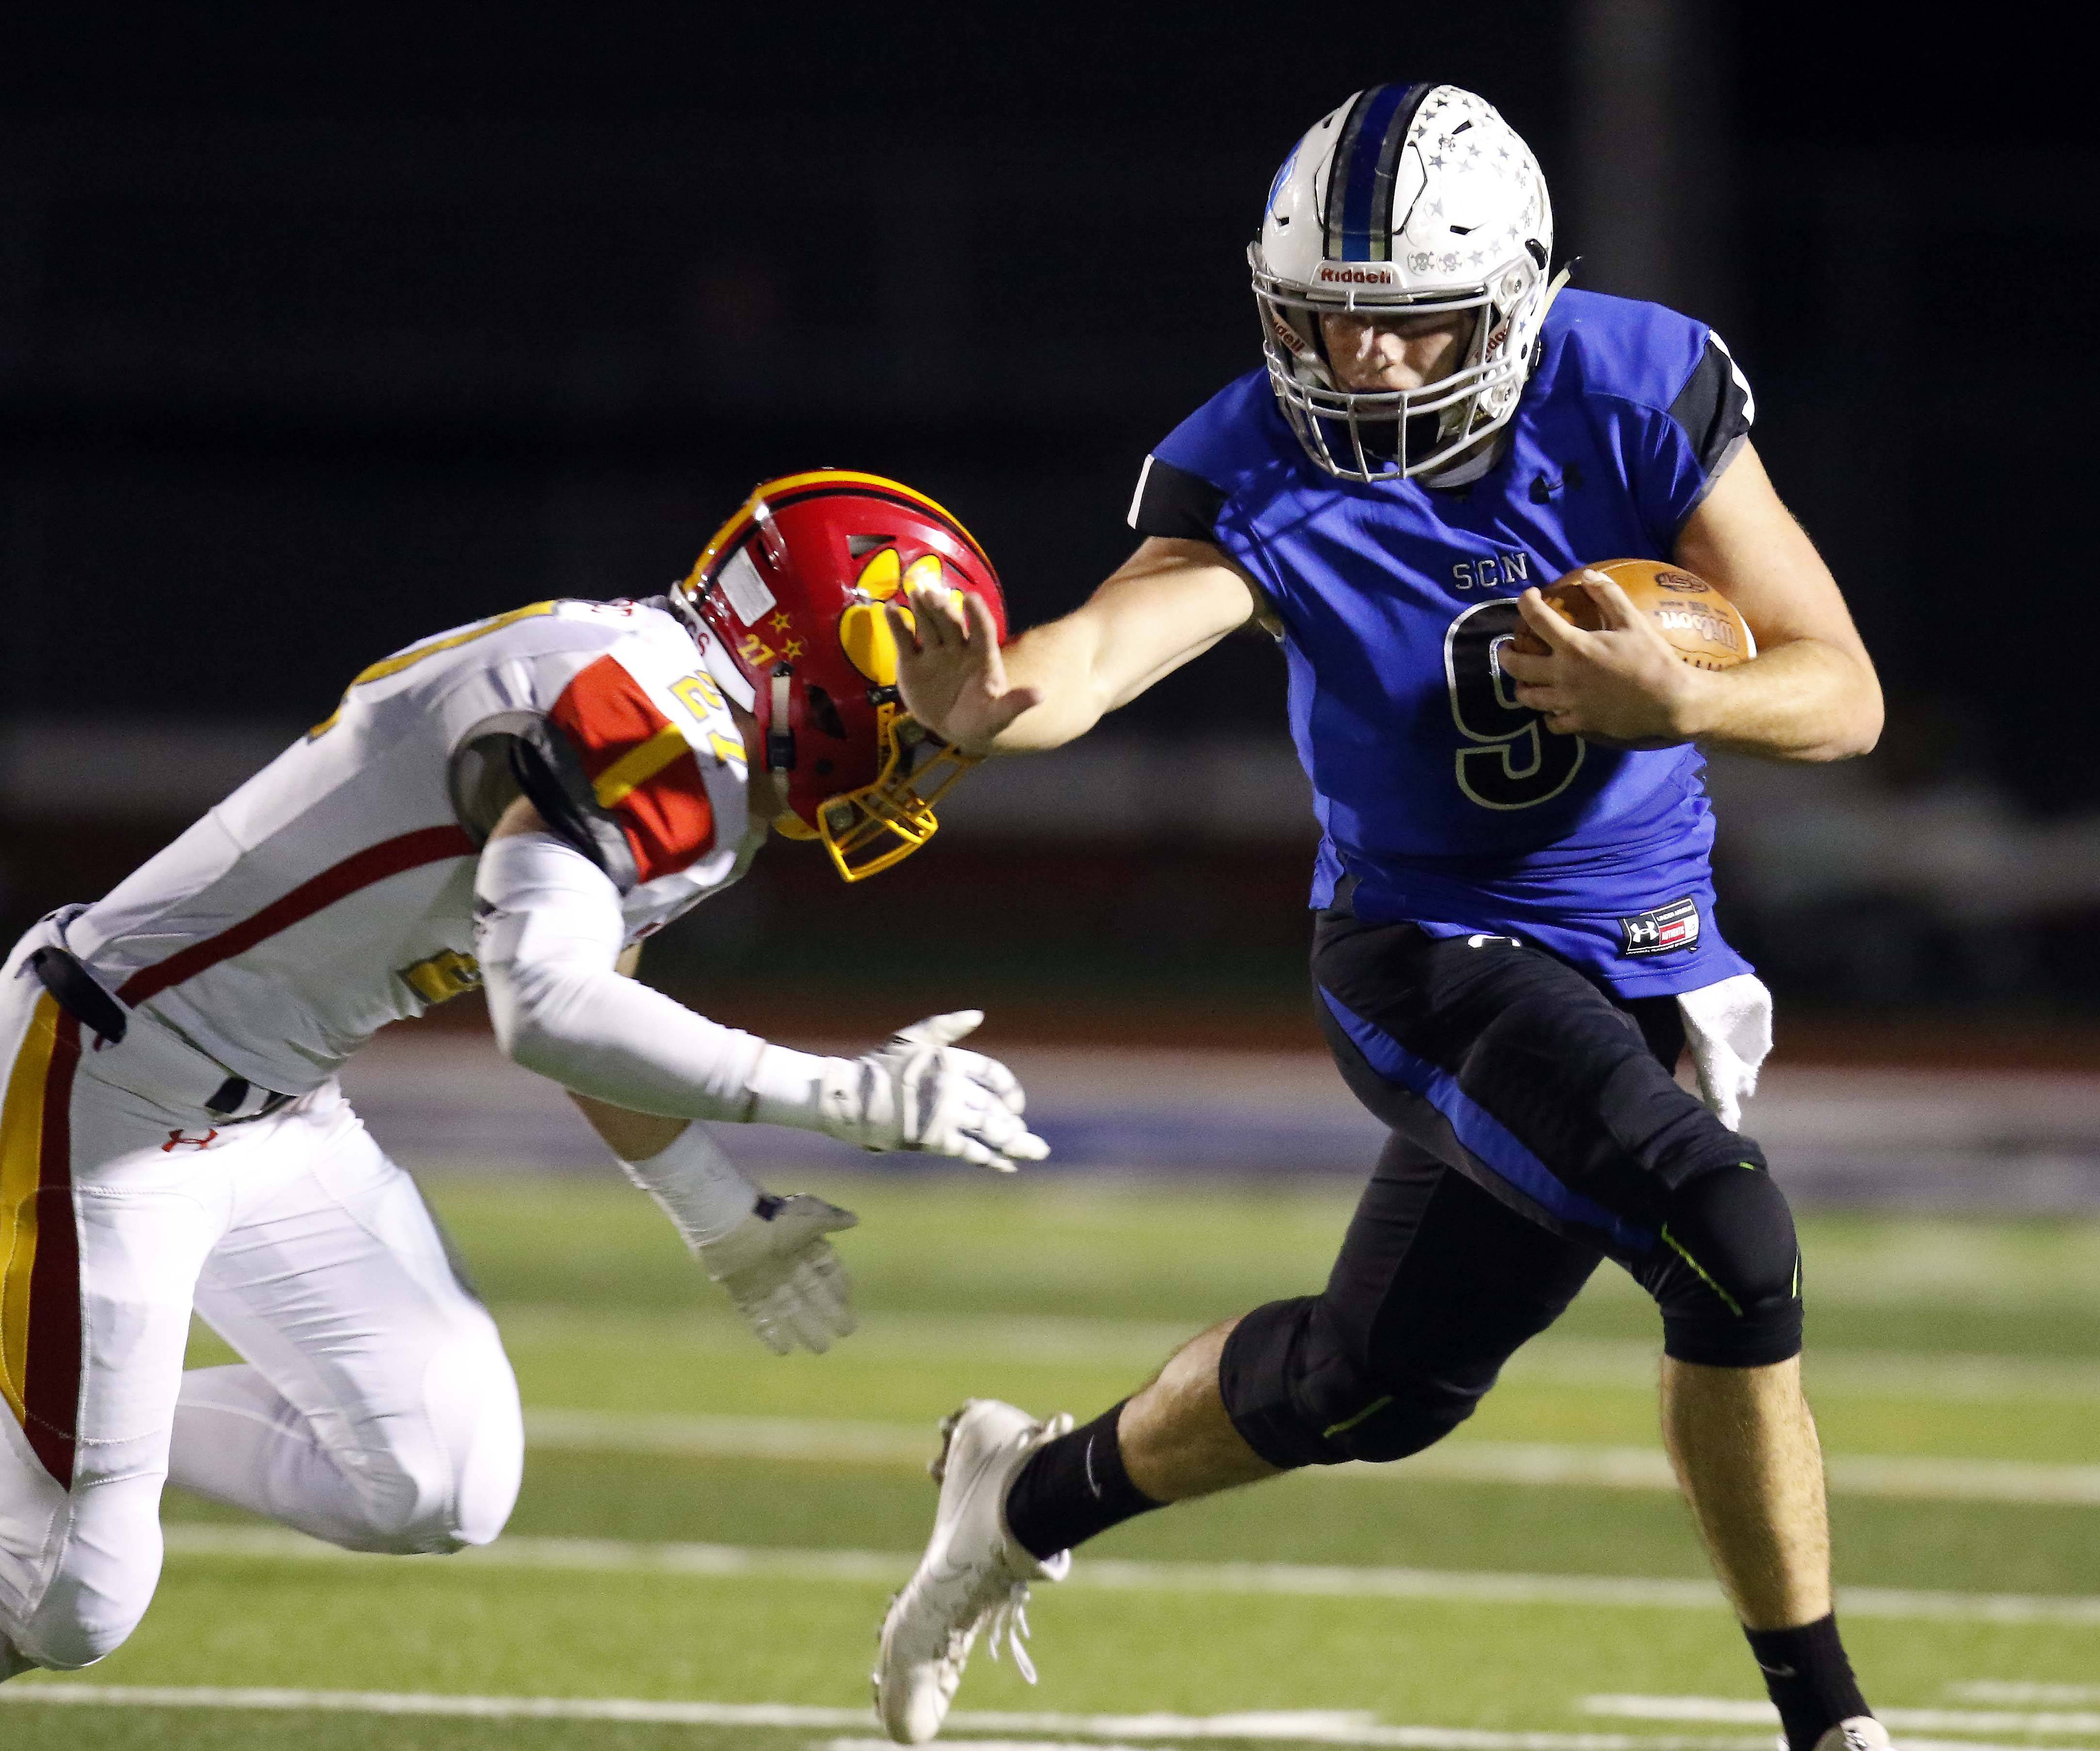 In a classic, St. Charles North upends Batavia